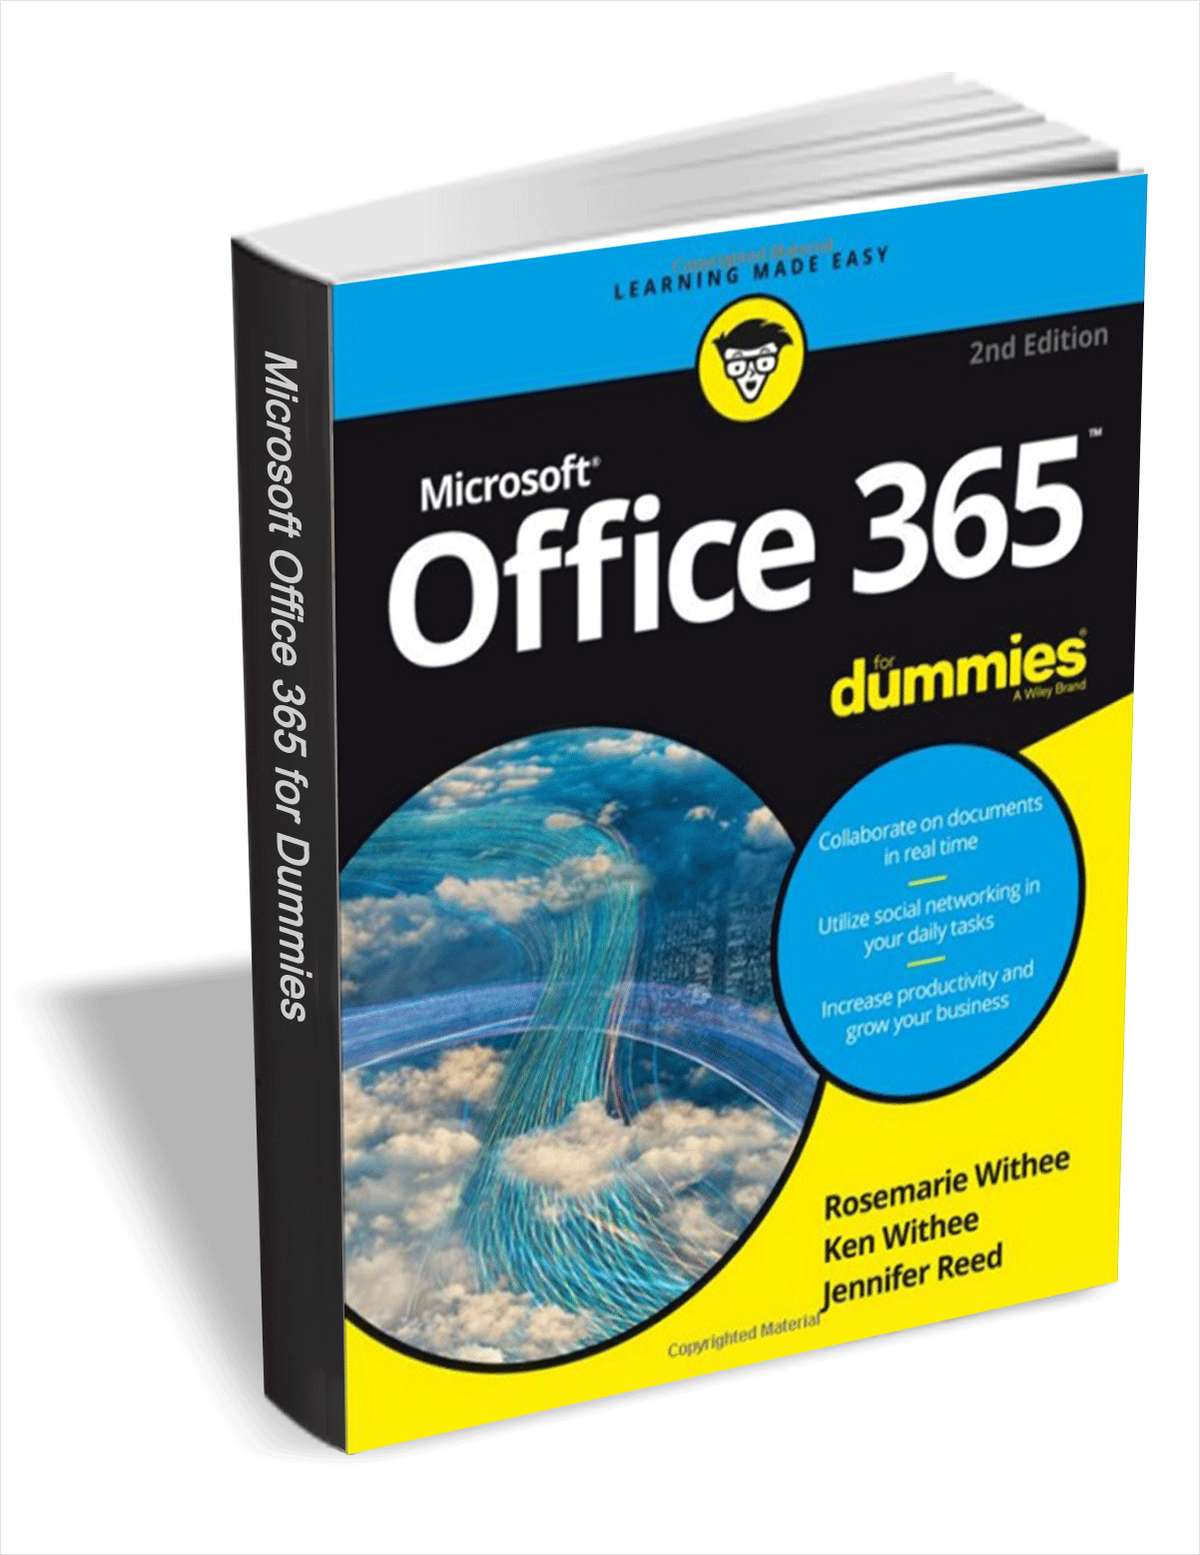 Office 365 For Dummies, 2nd Edition ($13 Value) FREE For a Limited Time